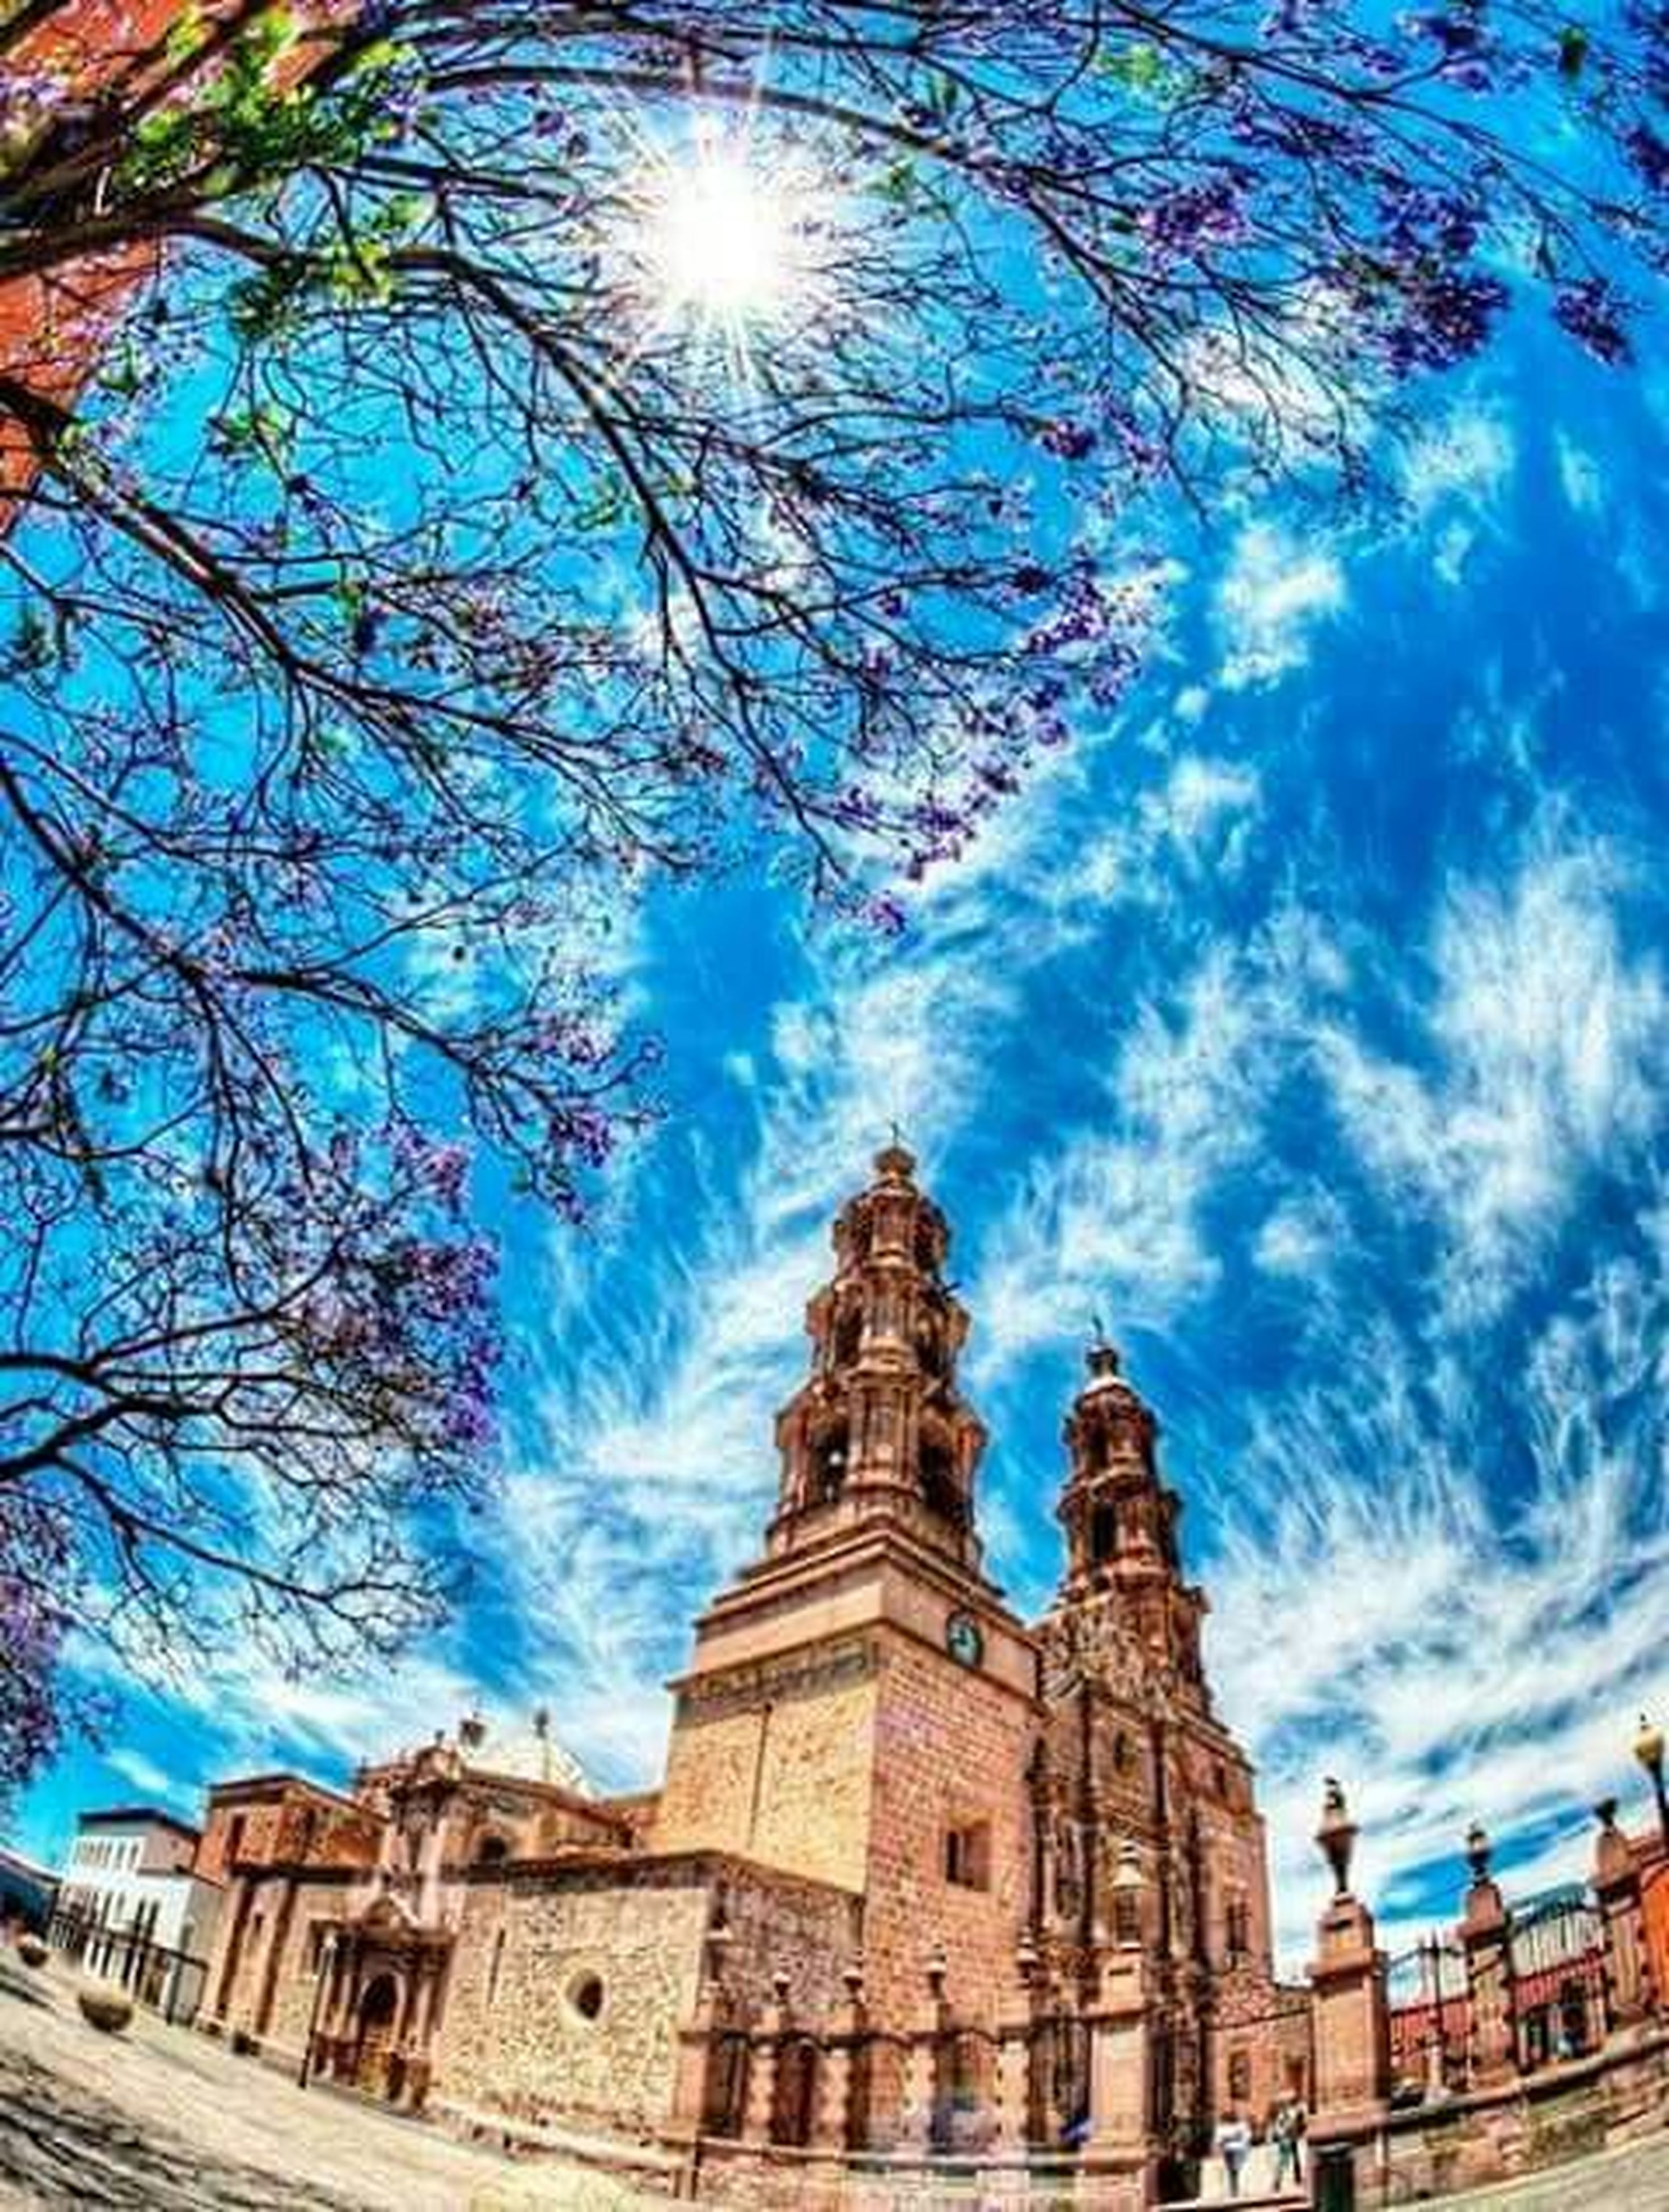 architecture, building exterior, built structure, place of worship, sky, blue, church, religion, tree, spirituality, low angle view, sunlight, cloud - sky, cathedral, history, famous place, bare tree, travel destinations